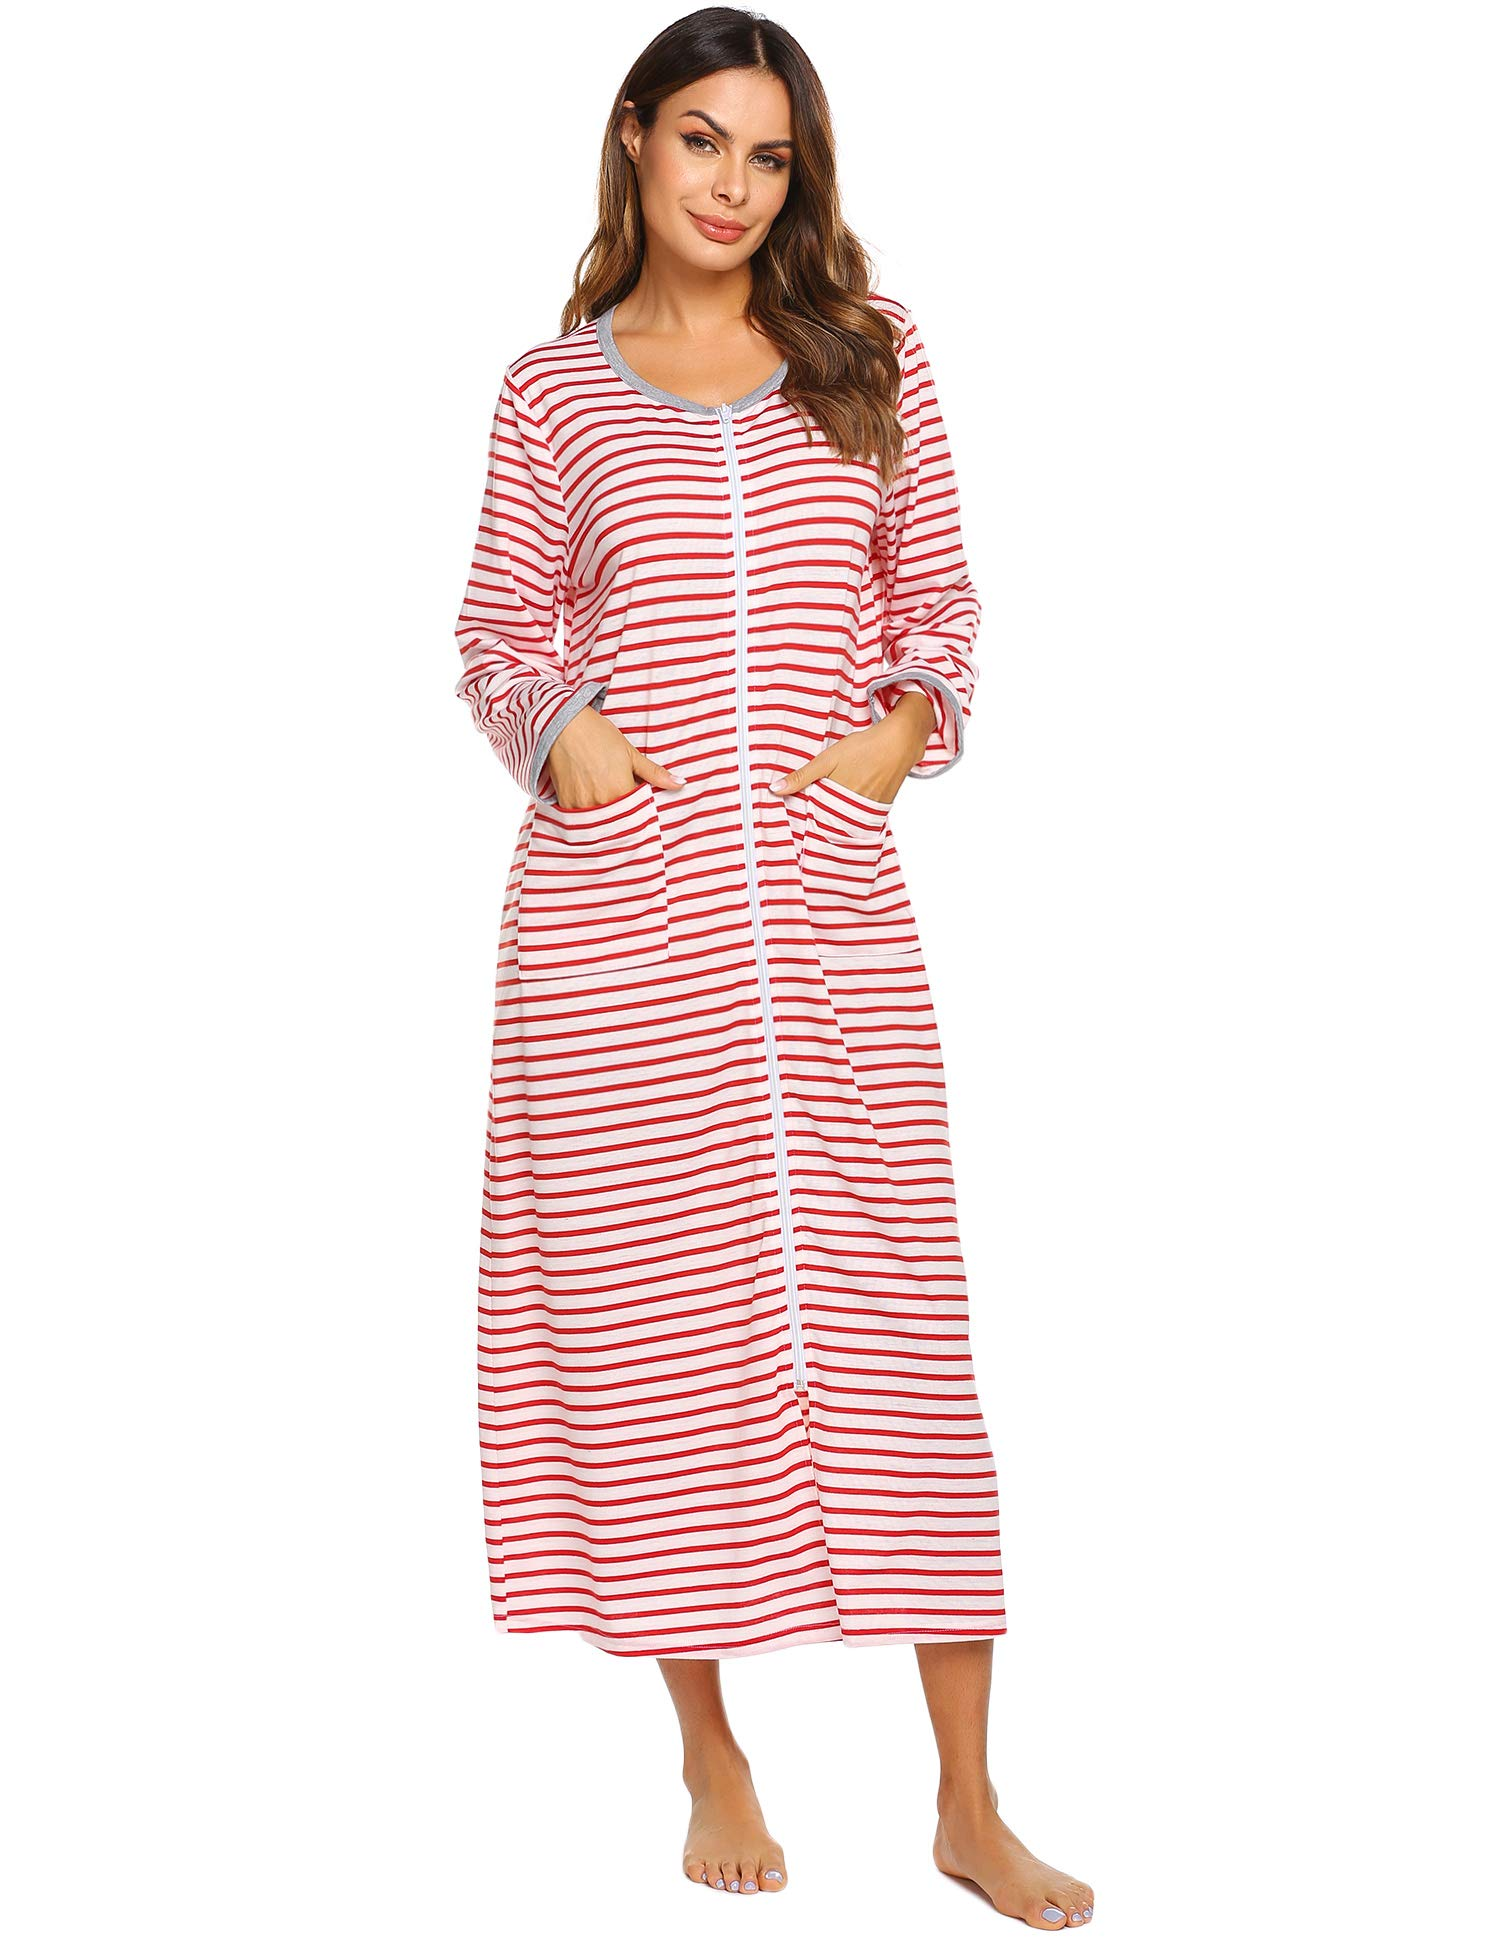 Image of Long Striped Zippered Robe for Women - See More Colors